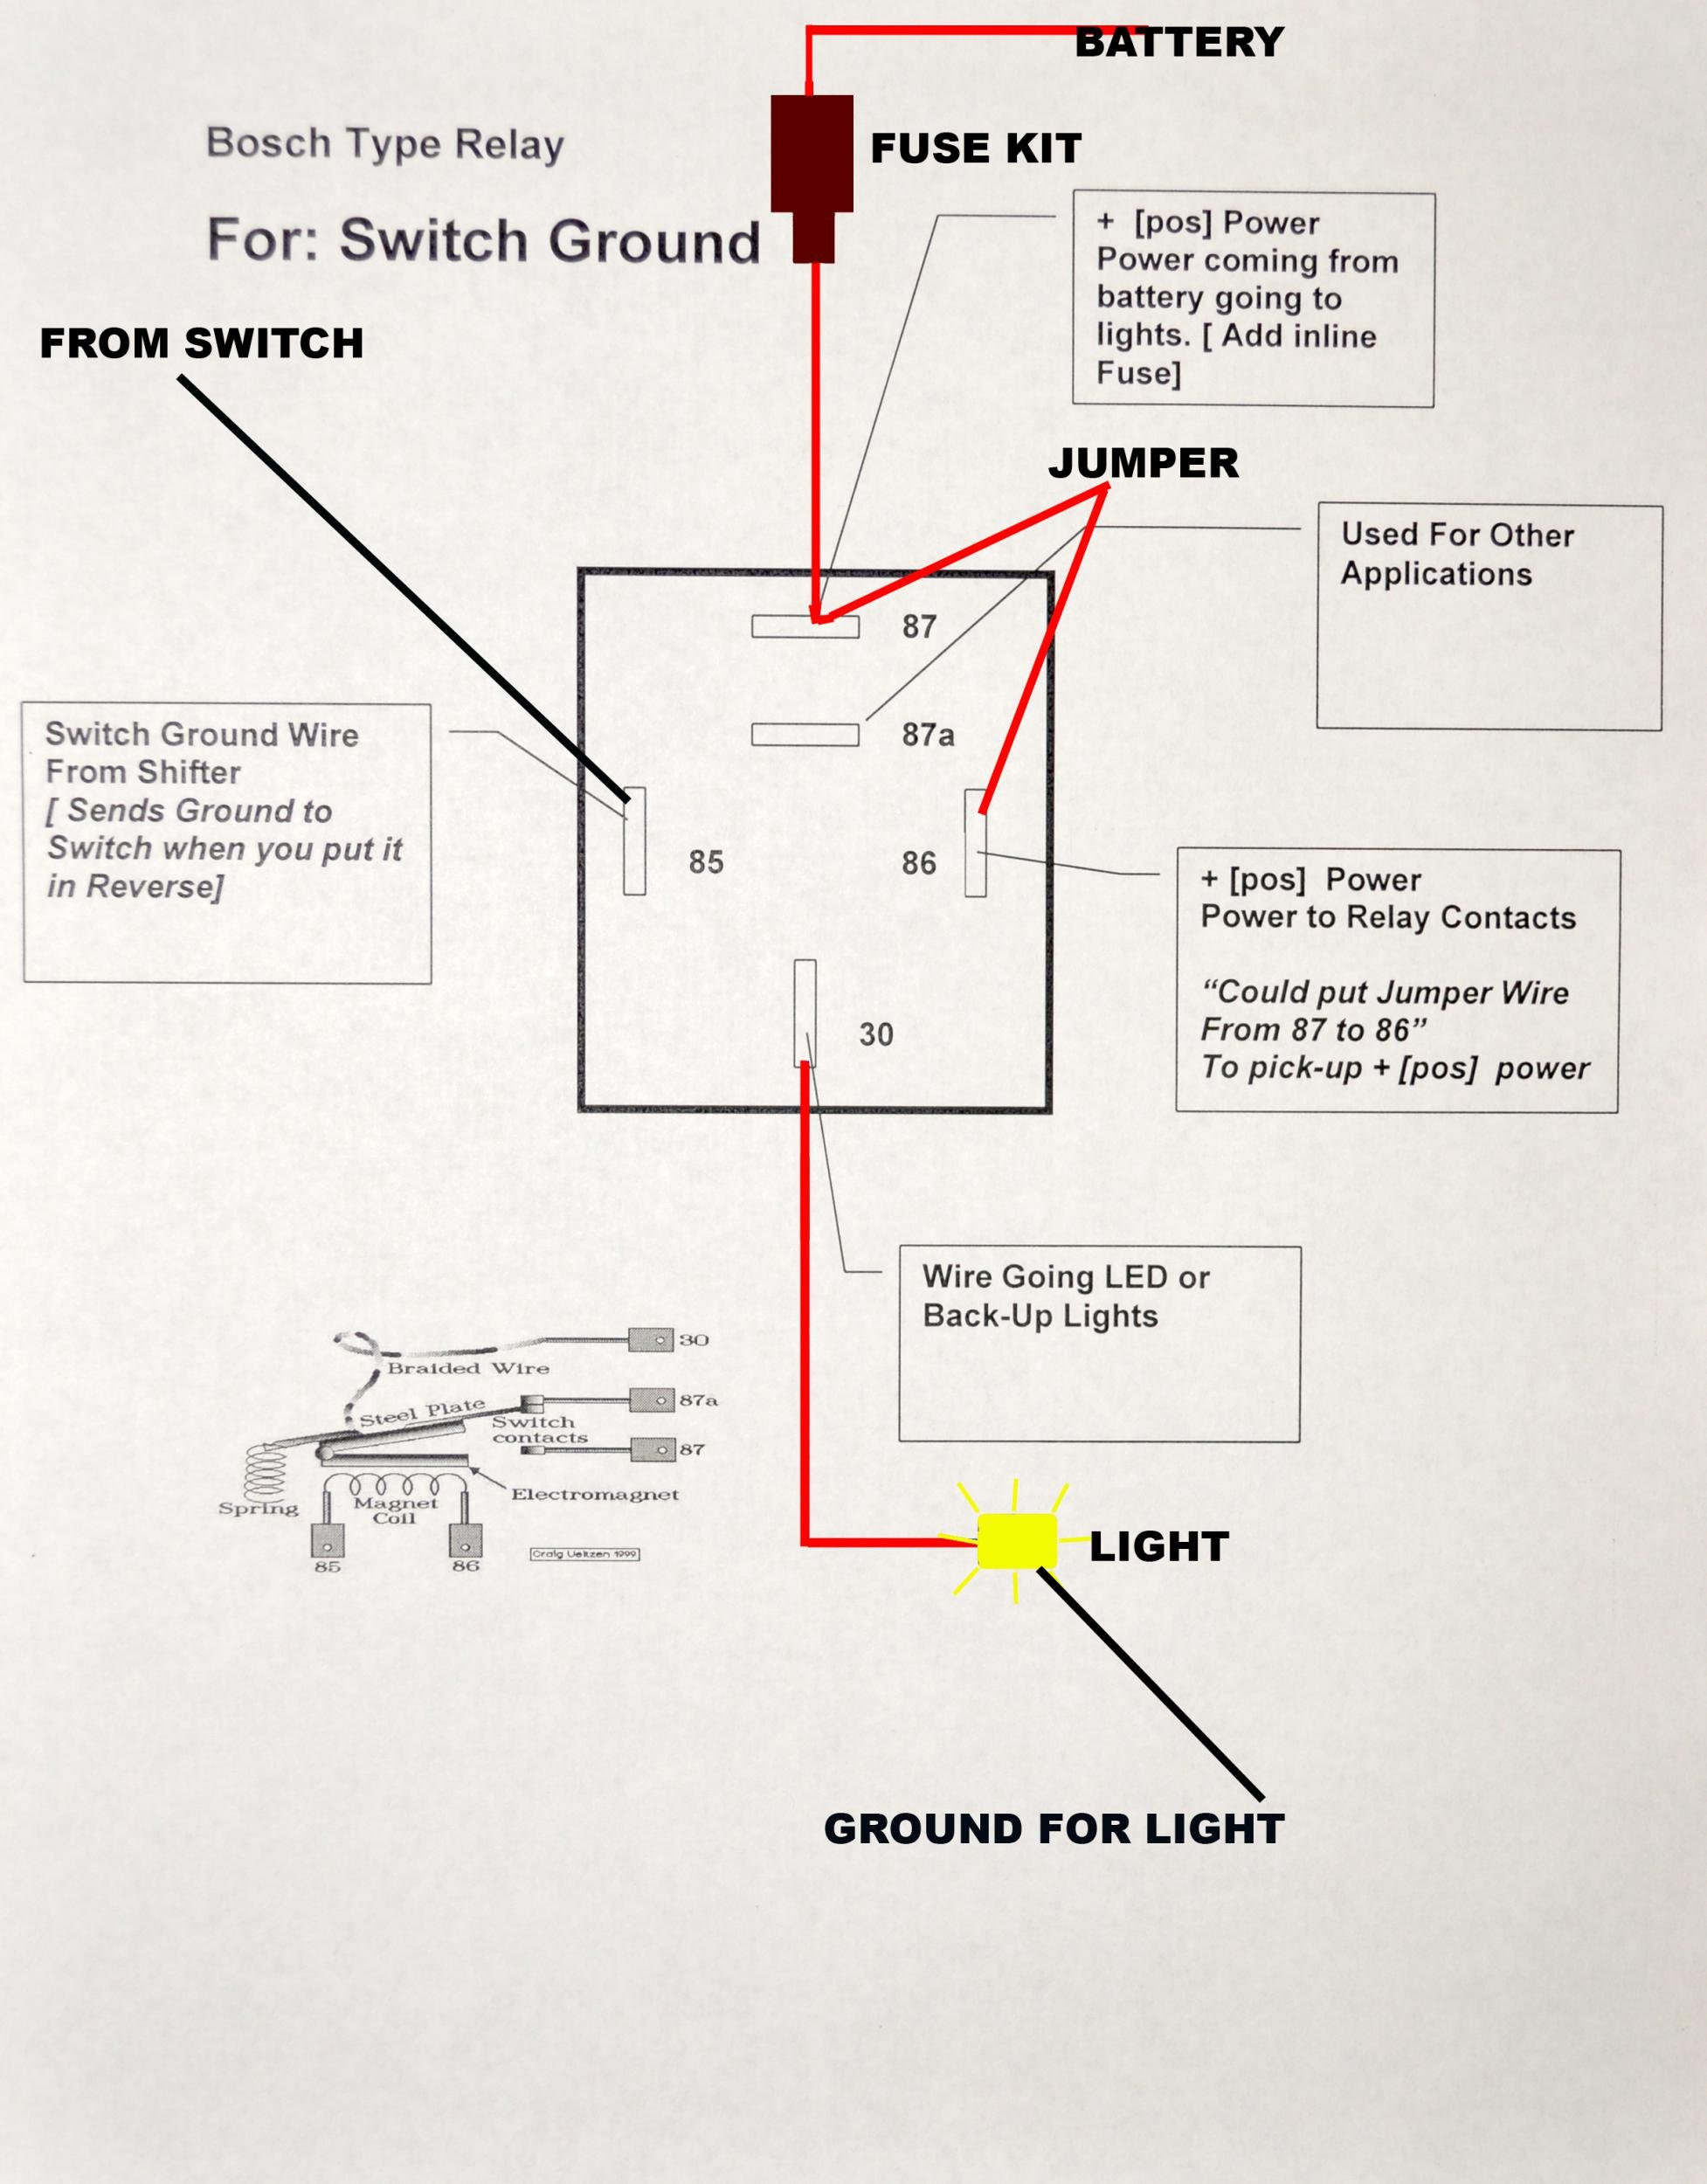 bosch relay wiring diagram single phase borewell starter car stereo get free image about